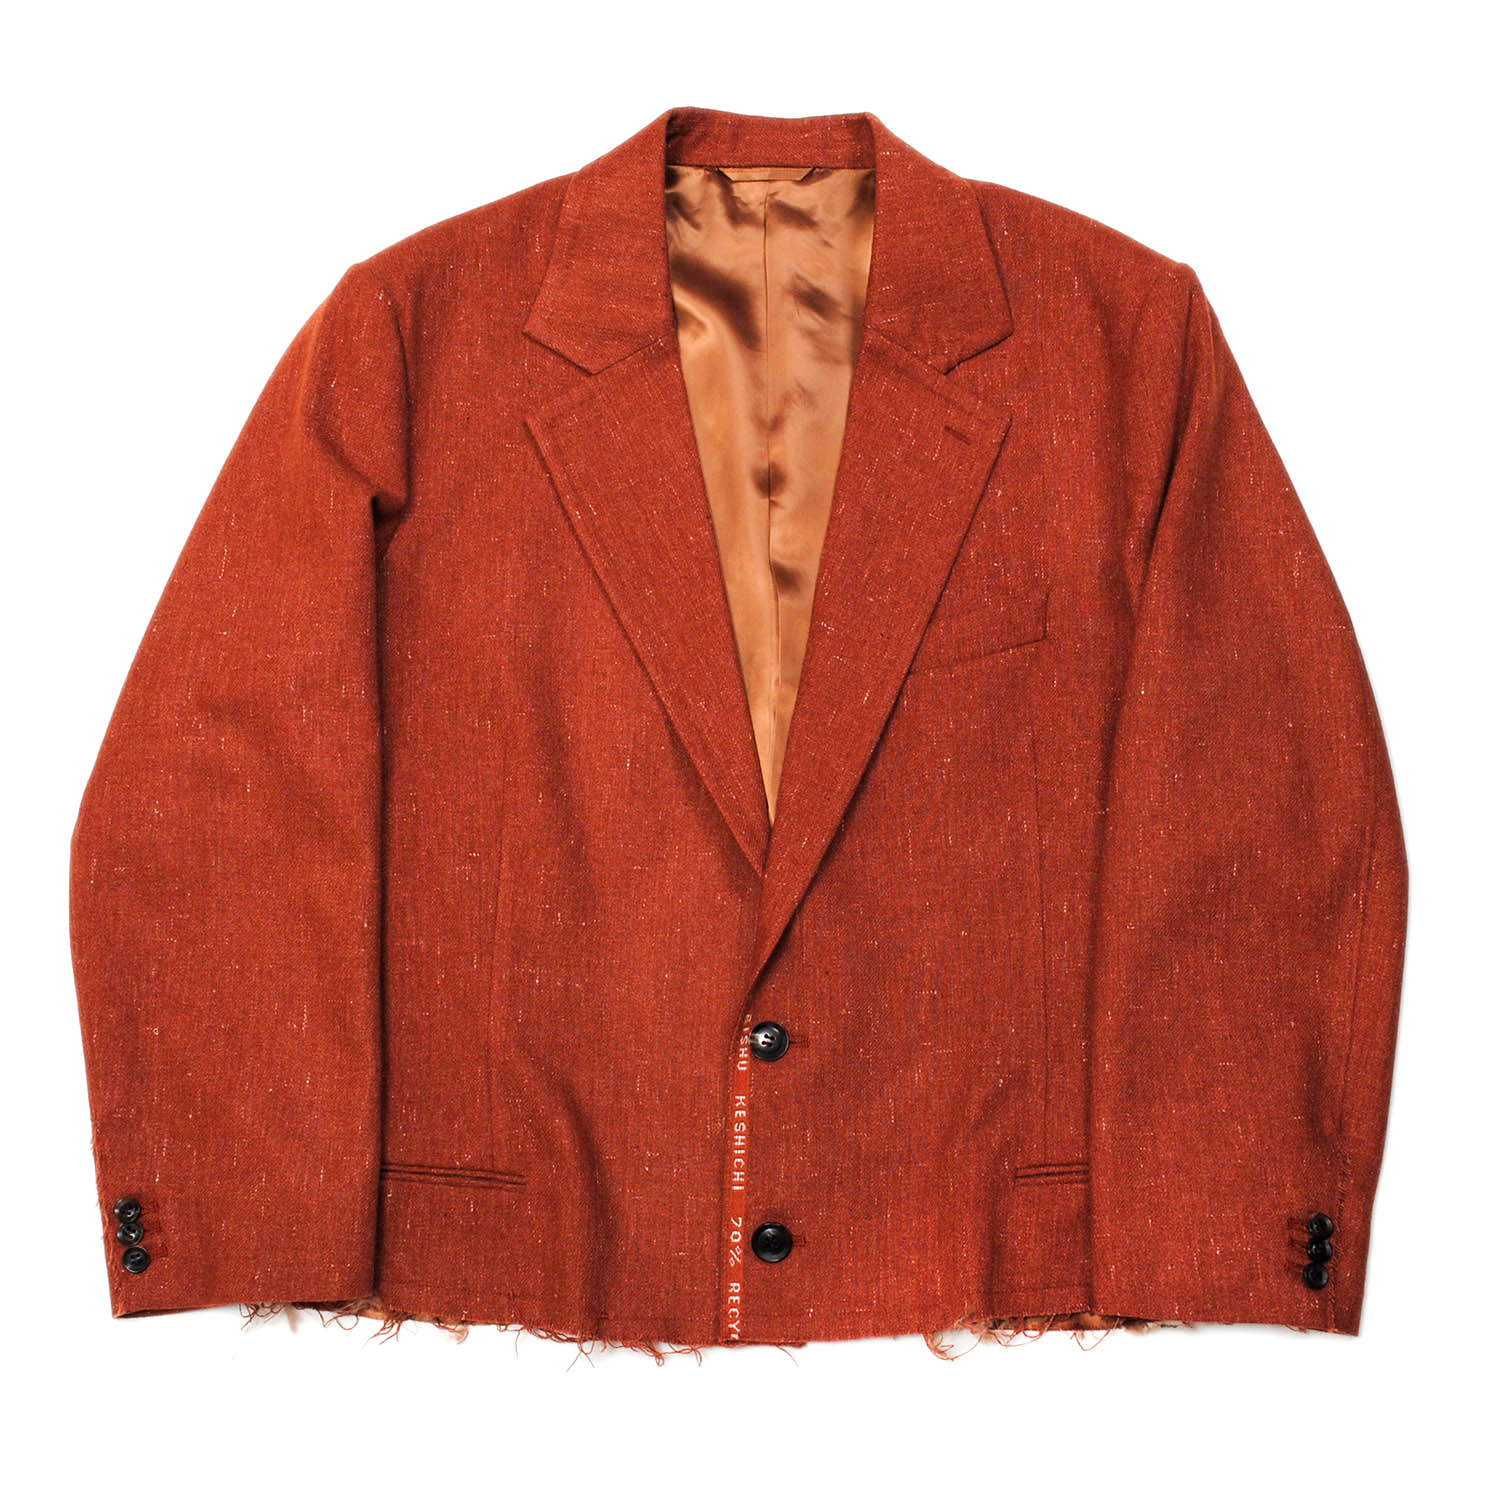 Brown Recycle Wool Tailored Jacket